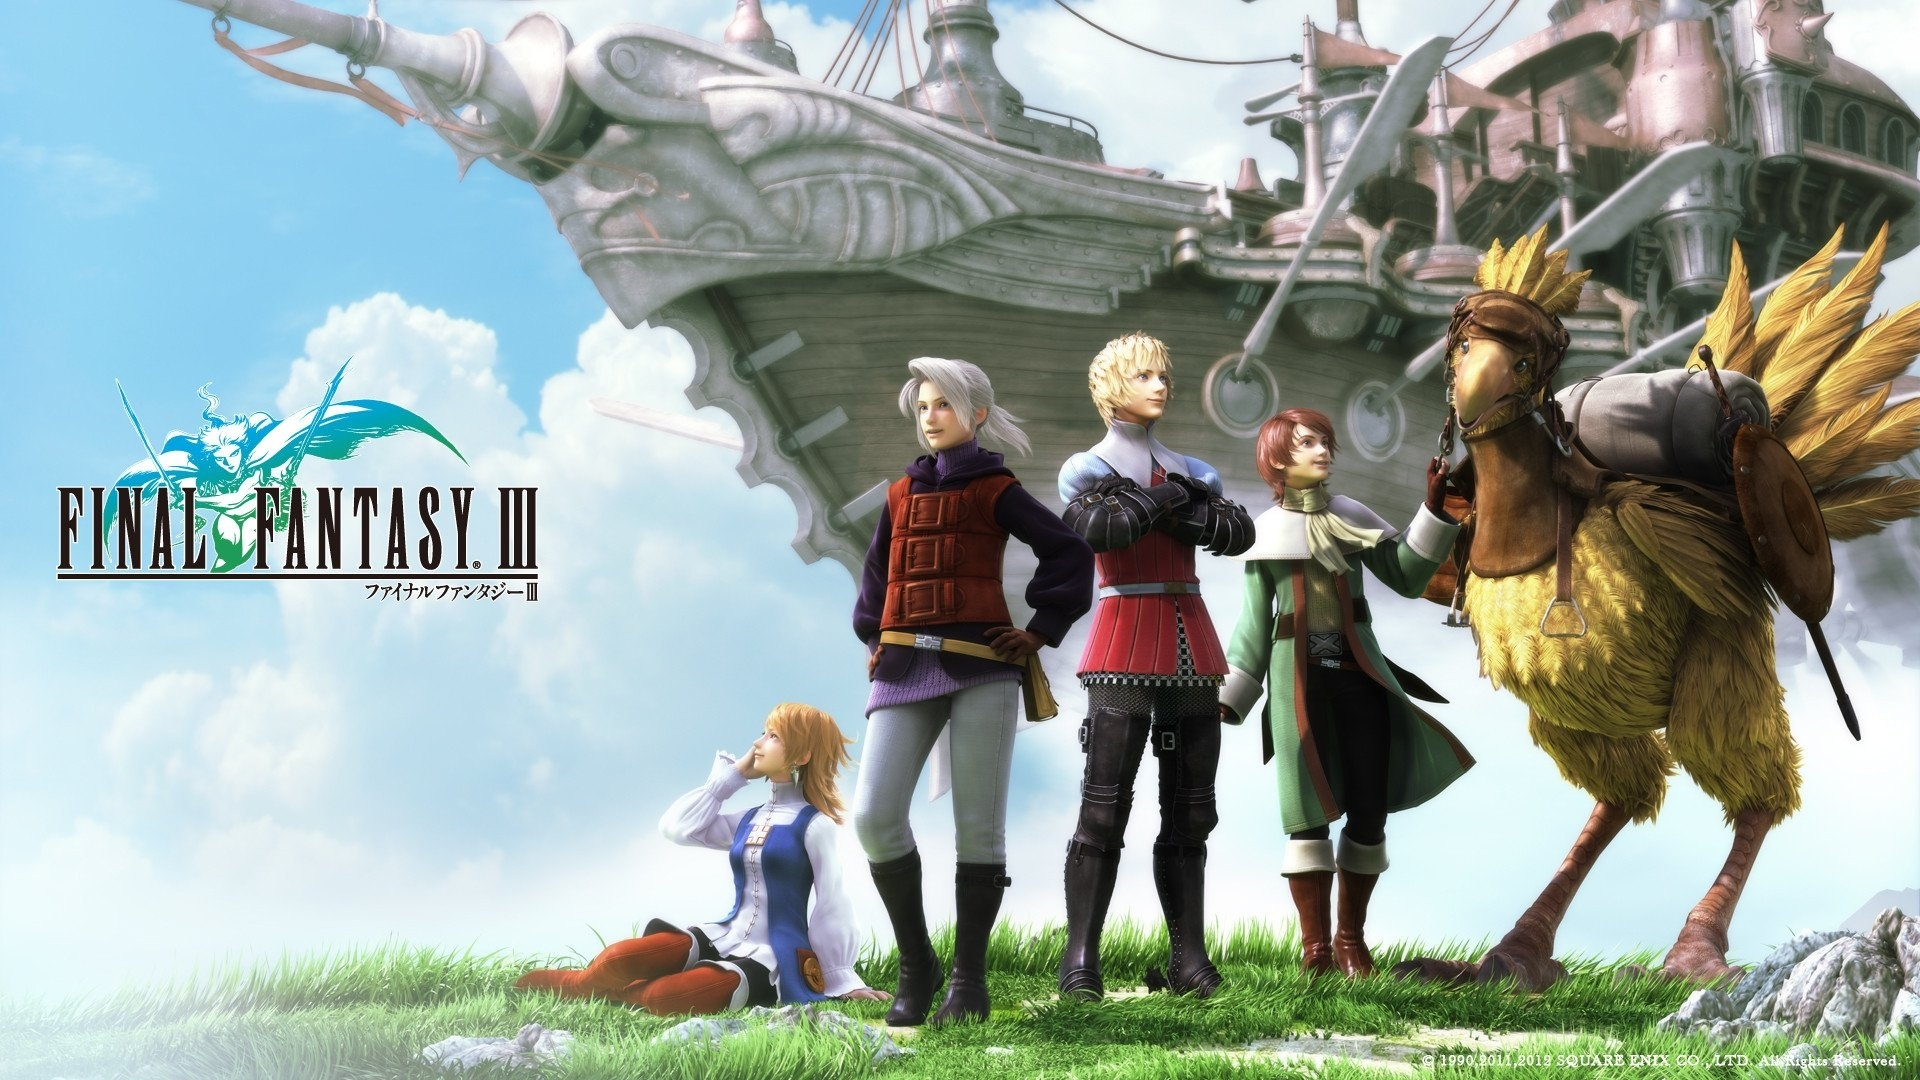 9 final fantasy iii hd wallpapers | background images - wallpaper abyss